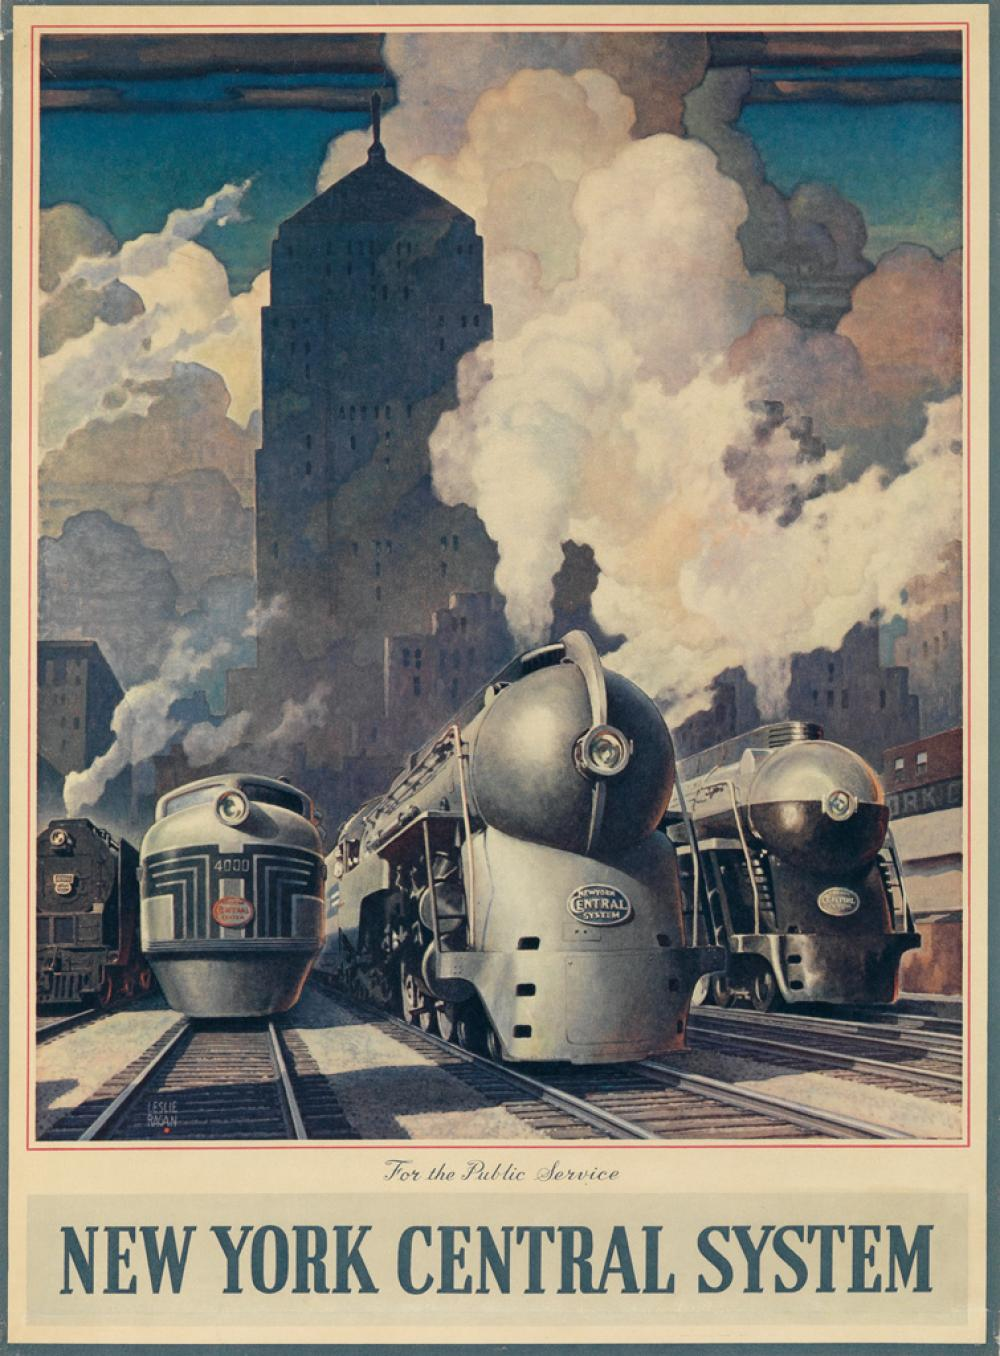 LESLIE RAGAN (1897-1972). NEW YORK CENTRAL SYSTEM / FOR THE PUBLIC SERVICE. Calendar back. 1945. 21x15 inches, 54x40 cm.